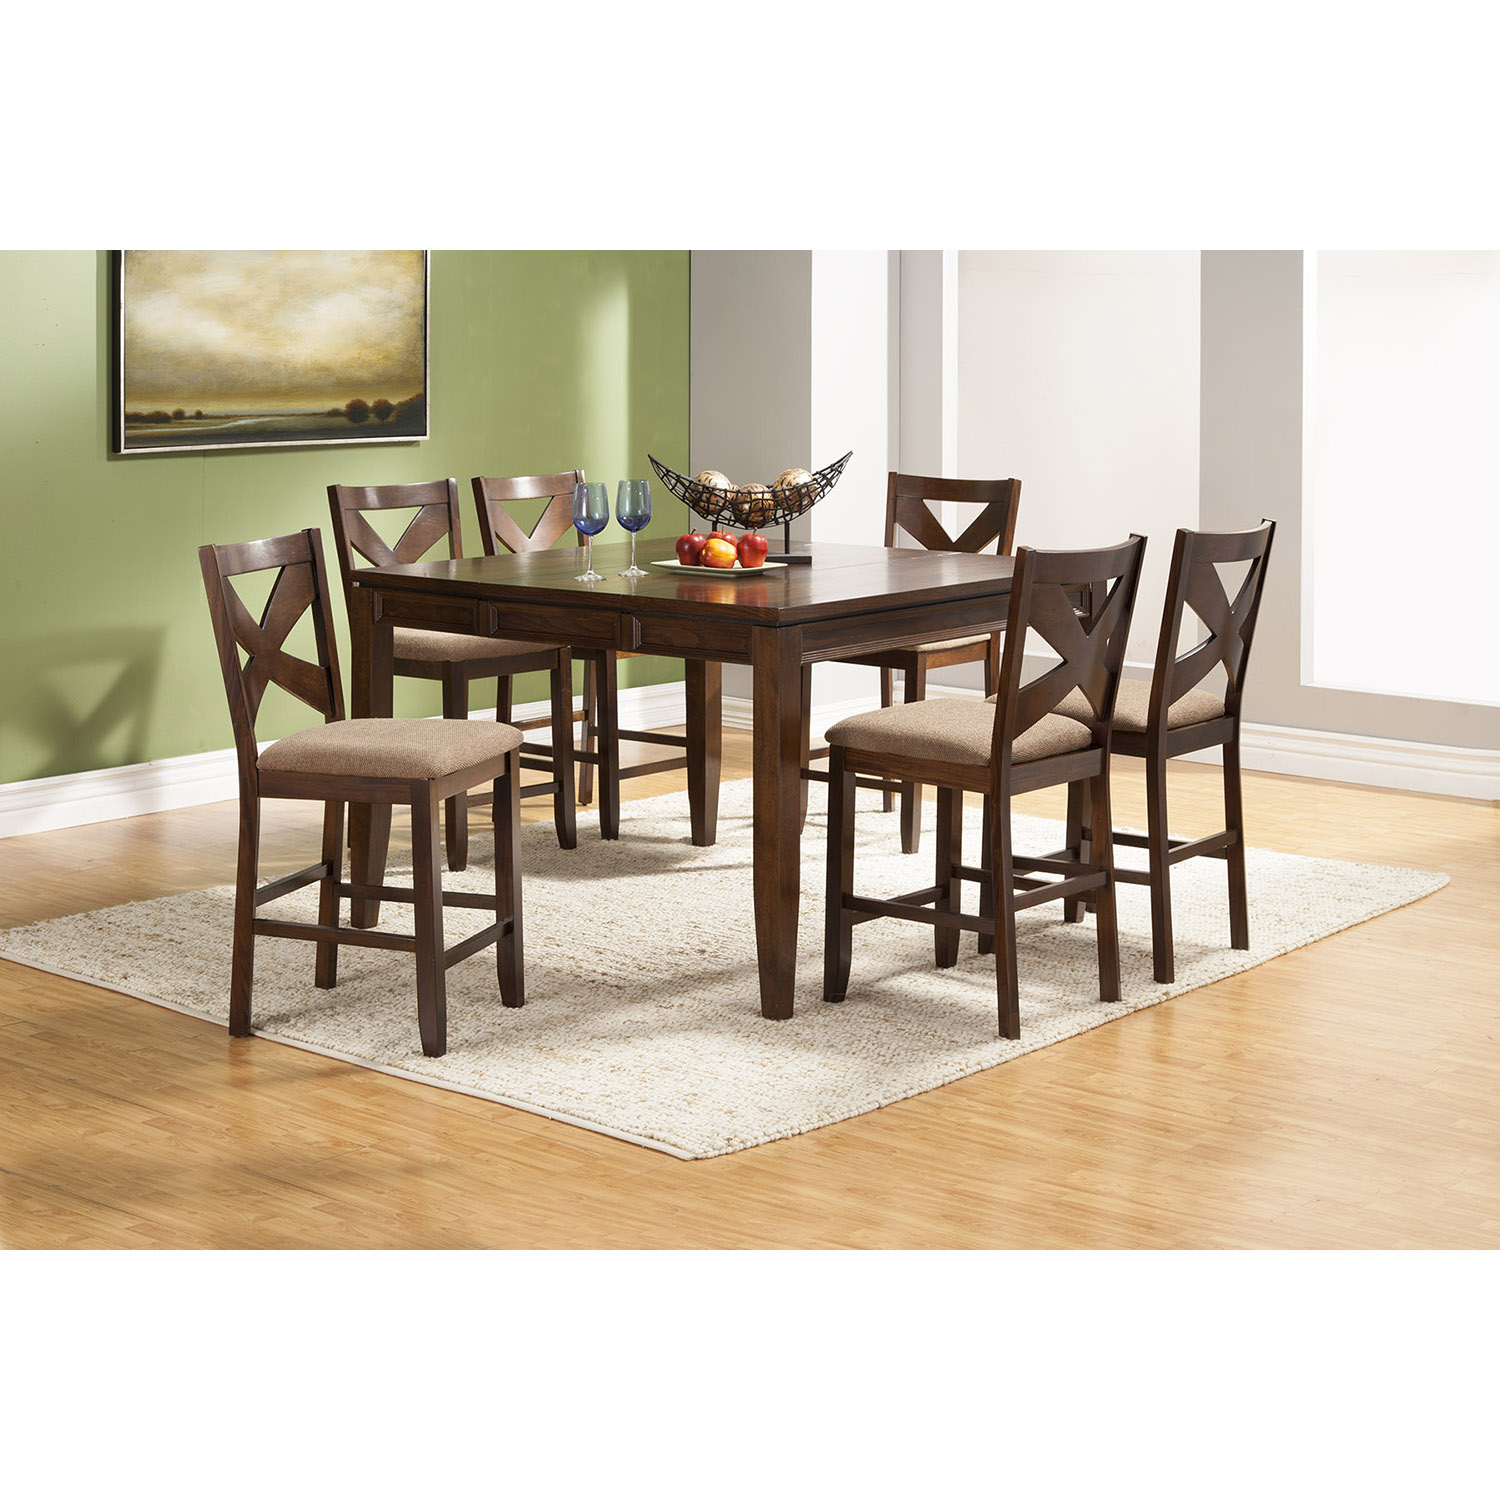 bar stool chair extenders quality bean bag chairs albany extension counter height table dark oak dcg stores